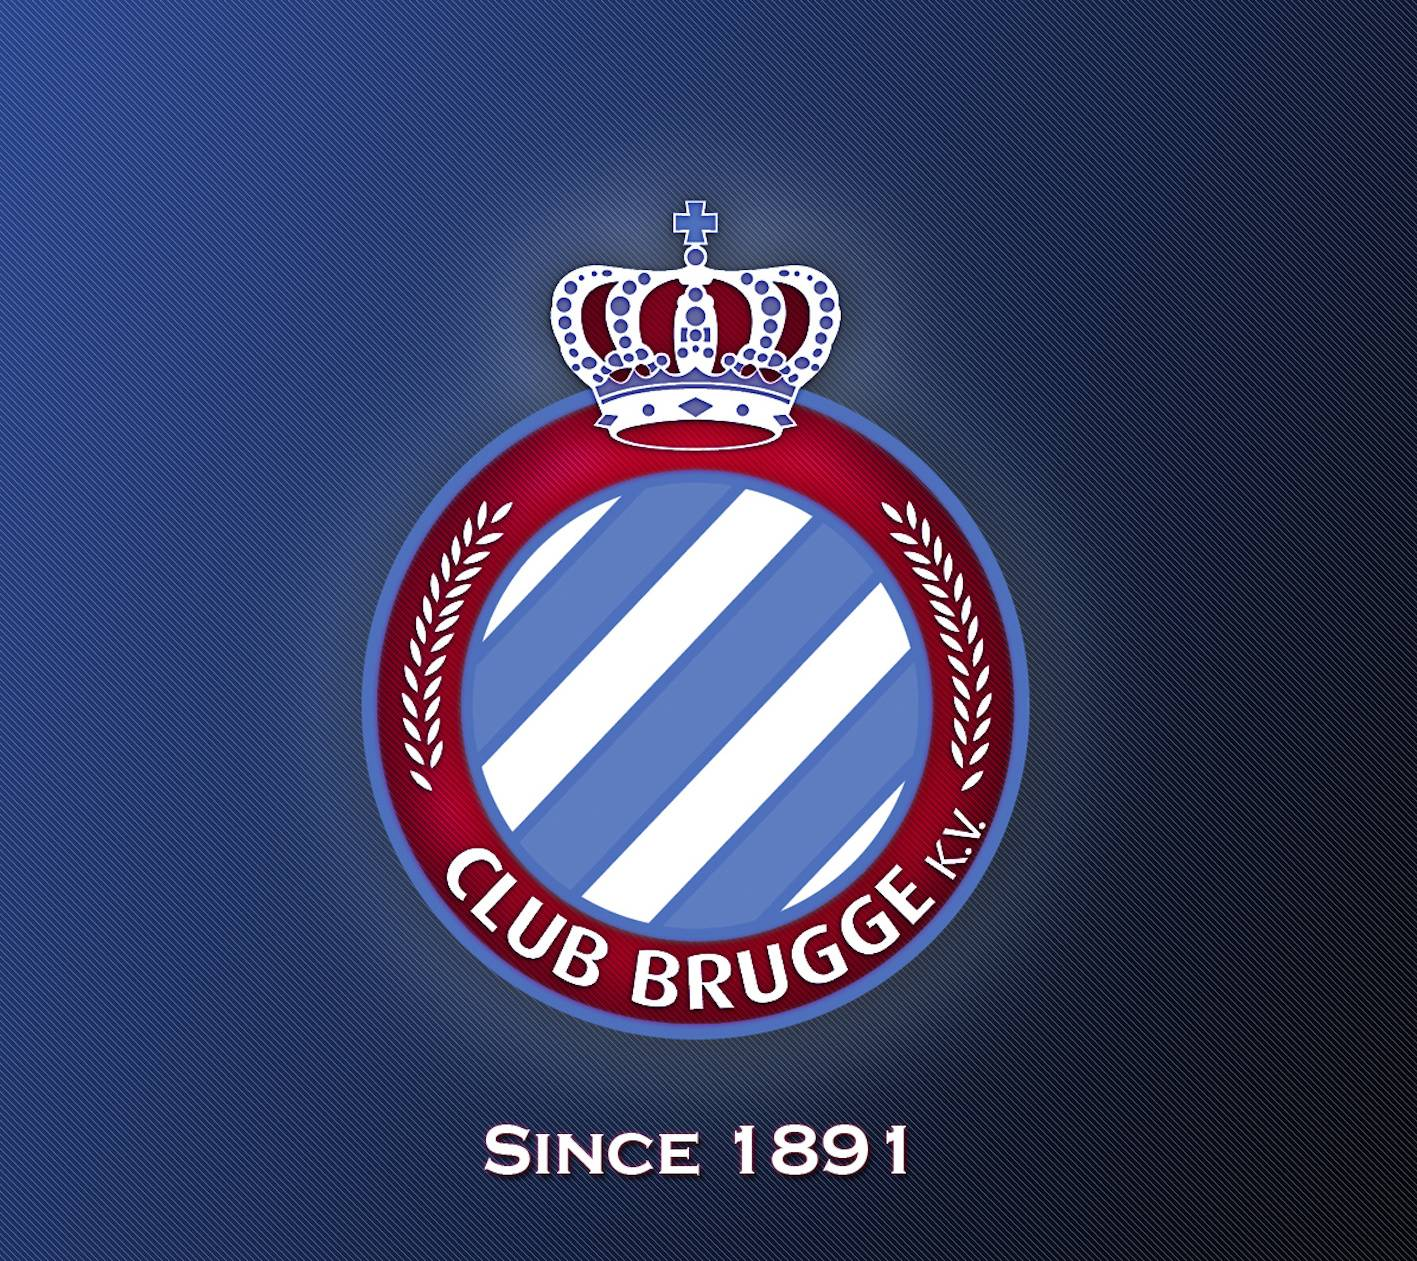 Club Brugge Wallpaper By Matsdr 63 Free On Zedge